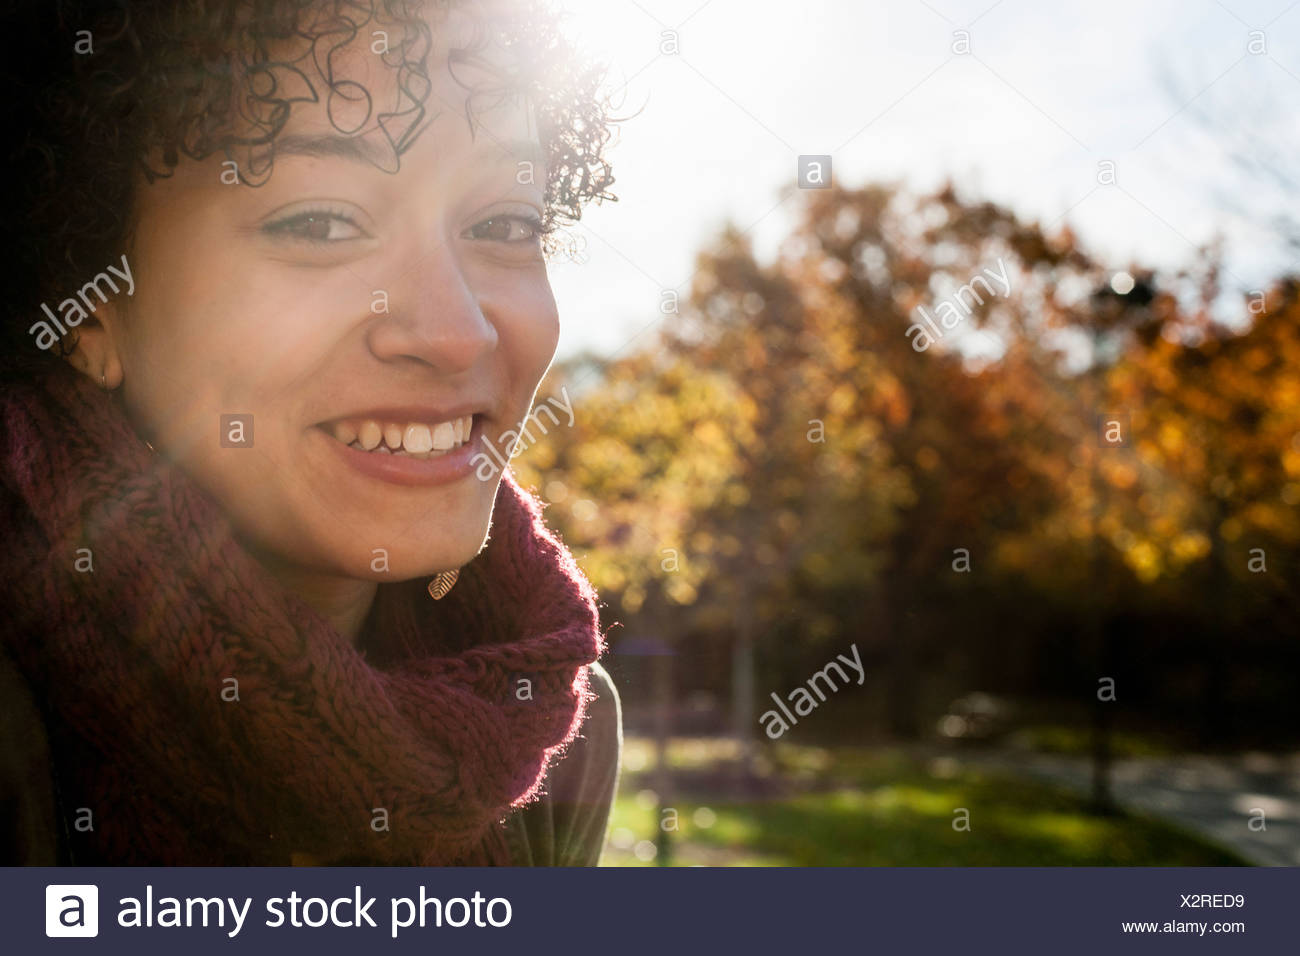 Young woman in park on autumn day - Stock Image